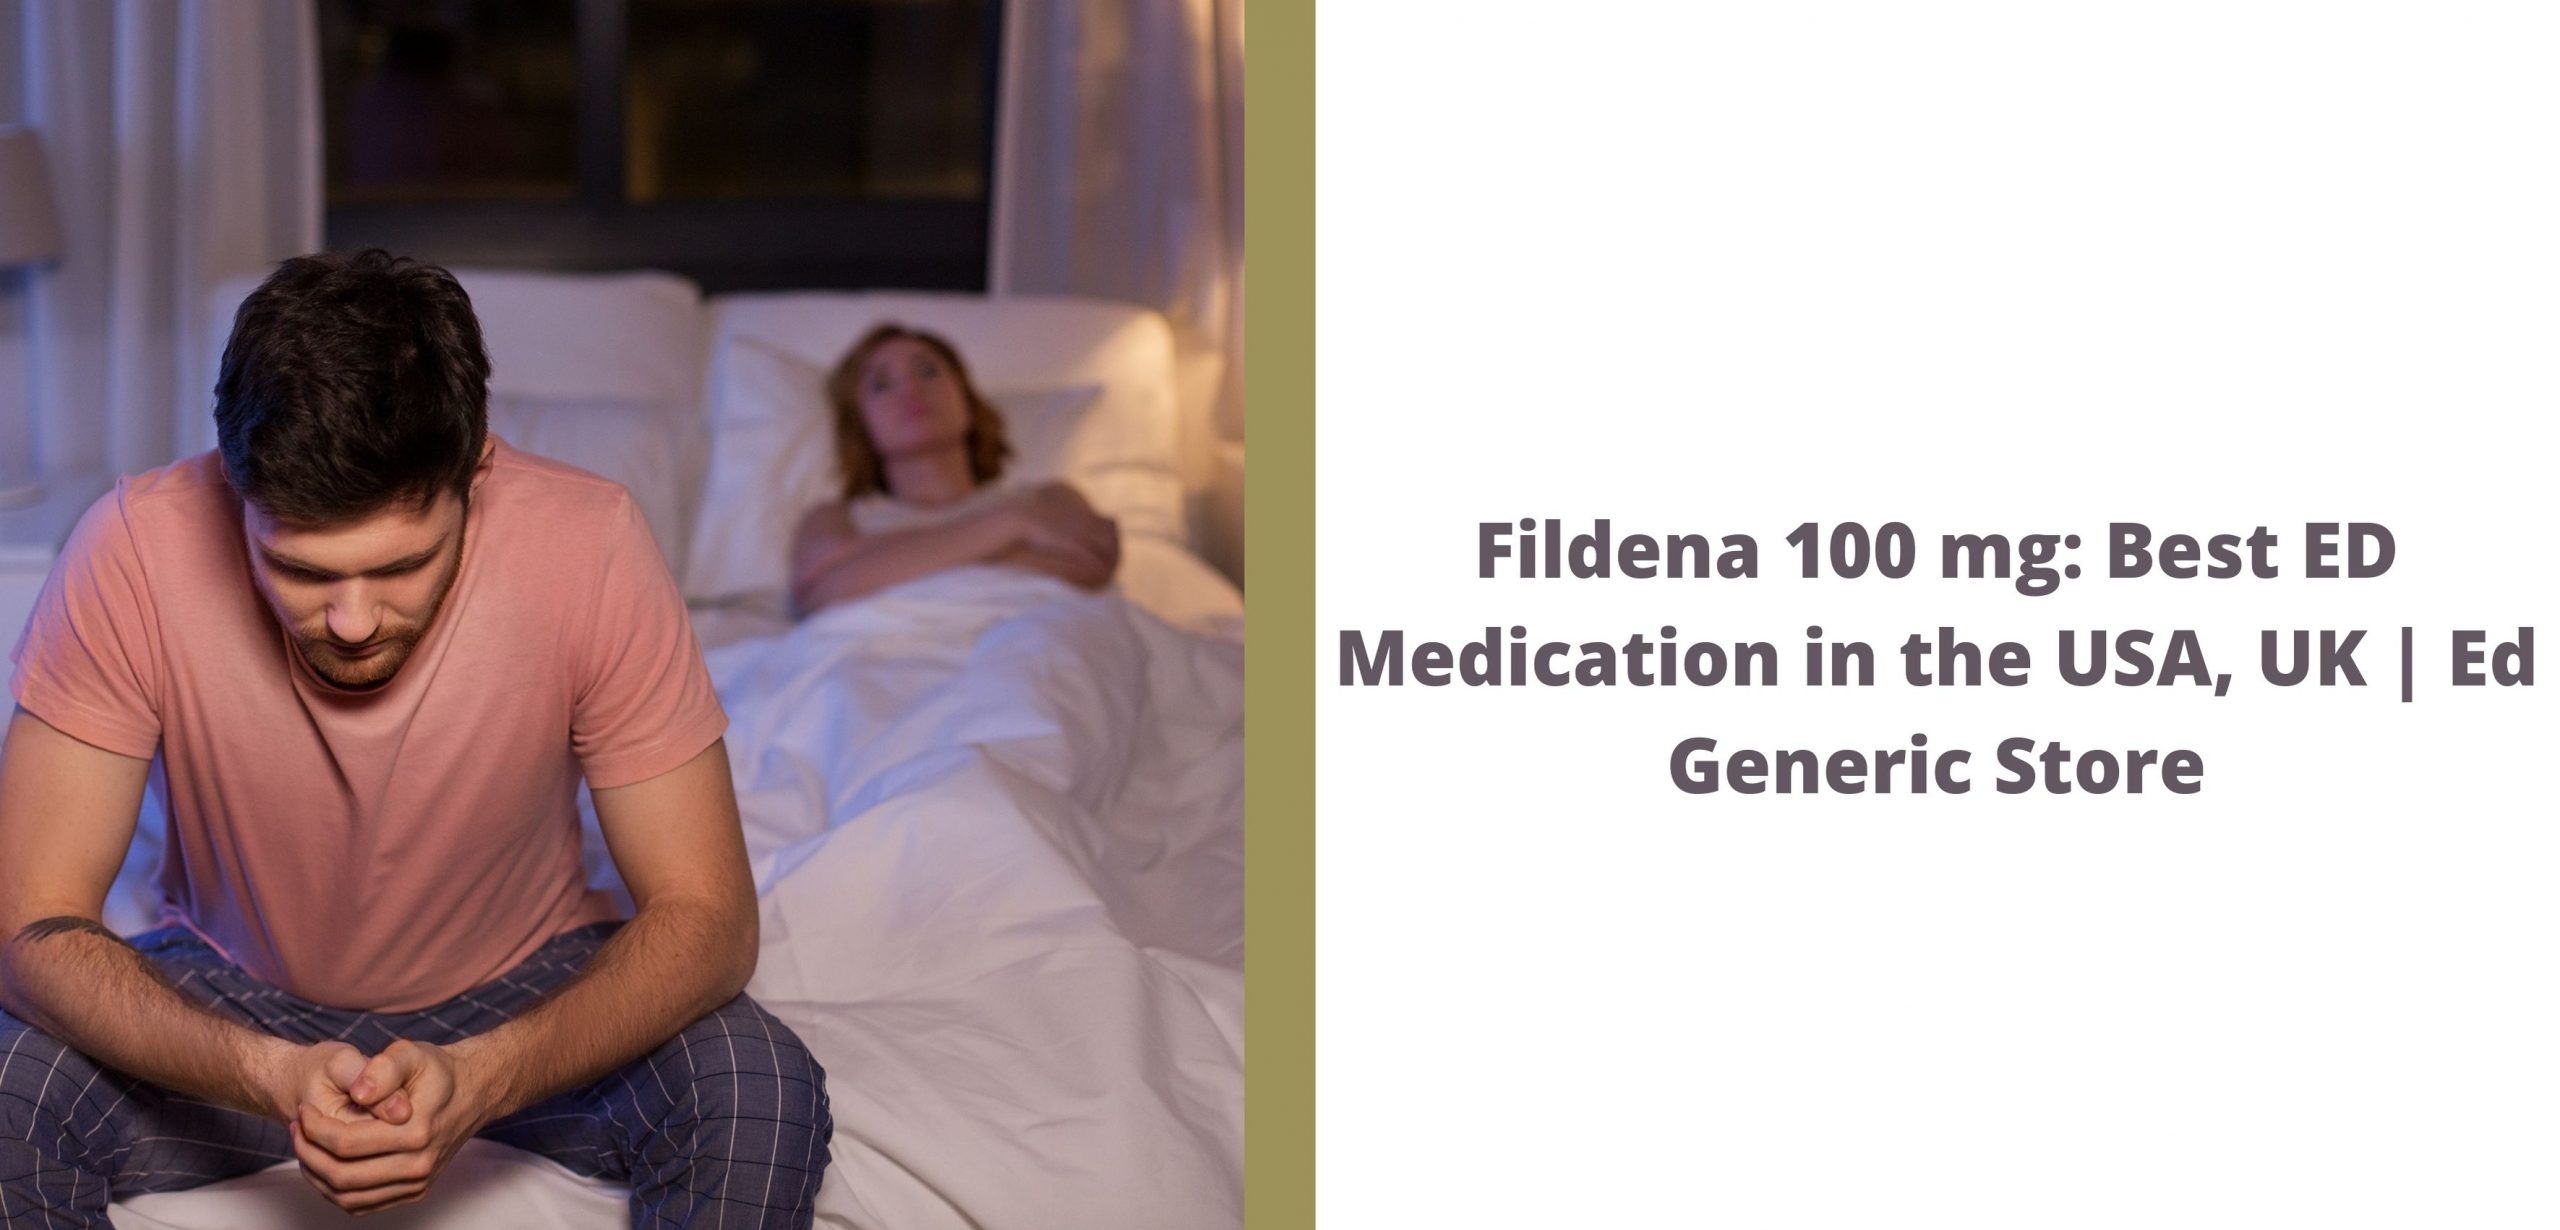 Fildena 100 mg: Best ED Medication in the USA, UK | Ed Generic Store